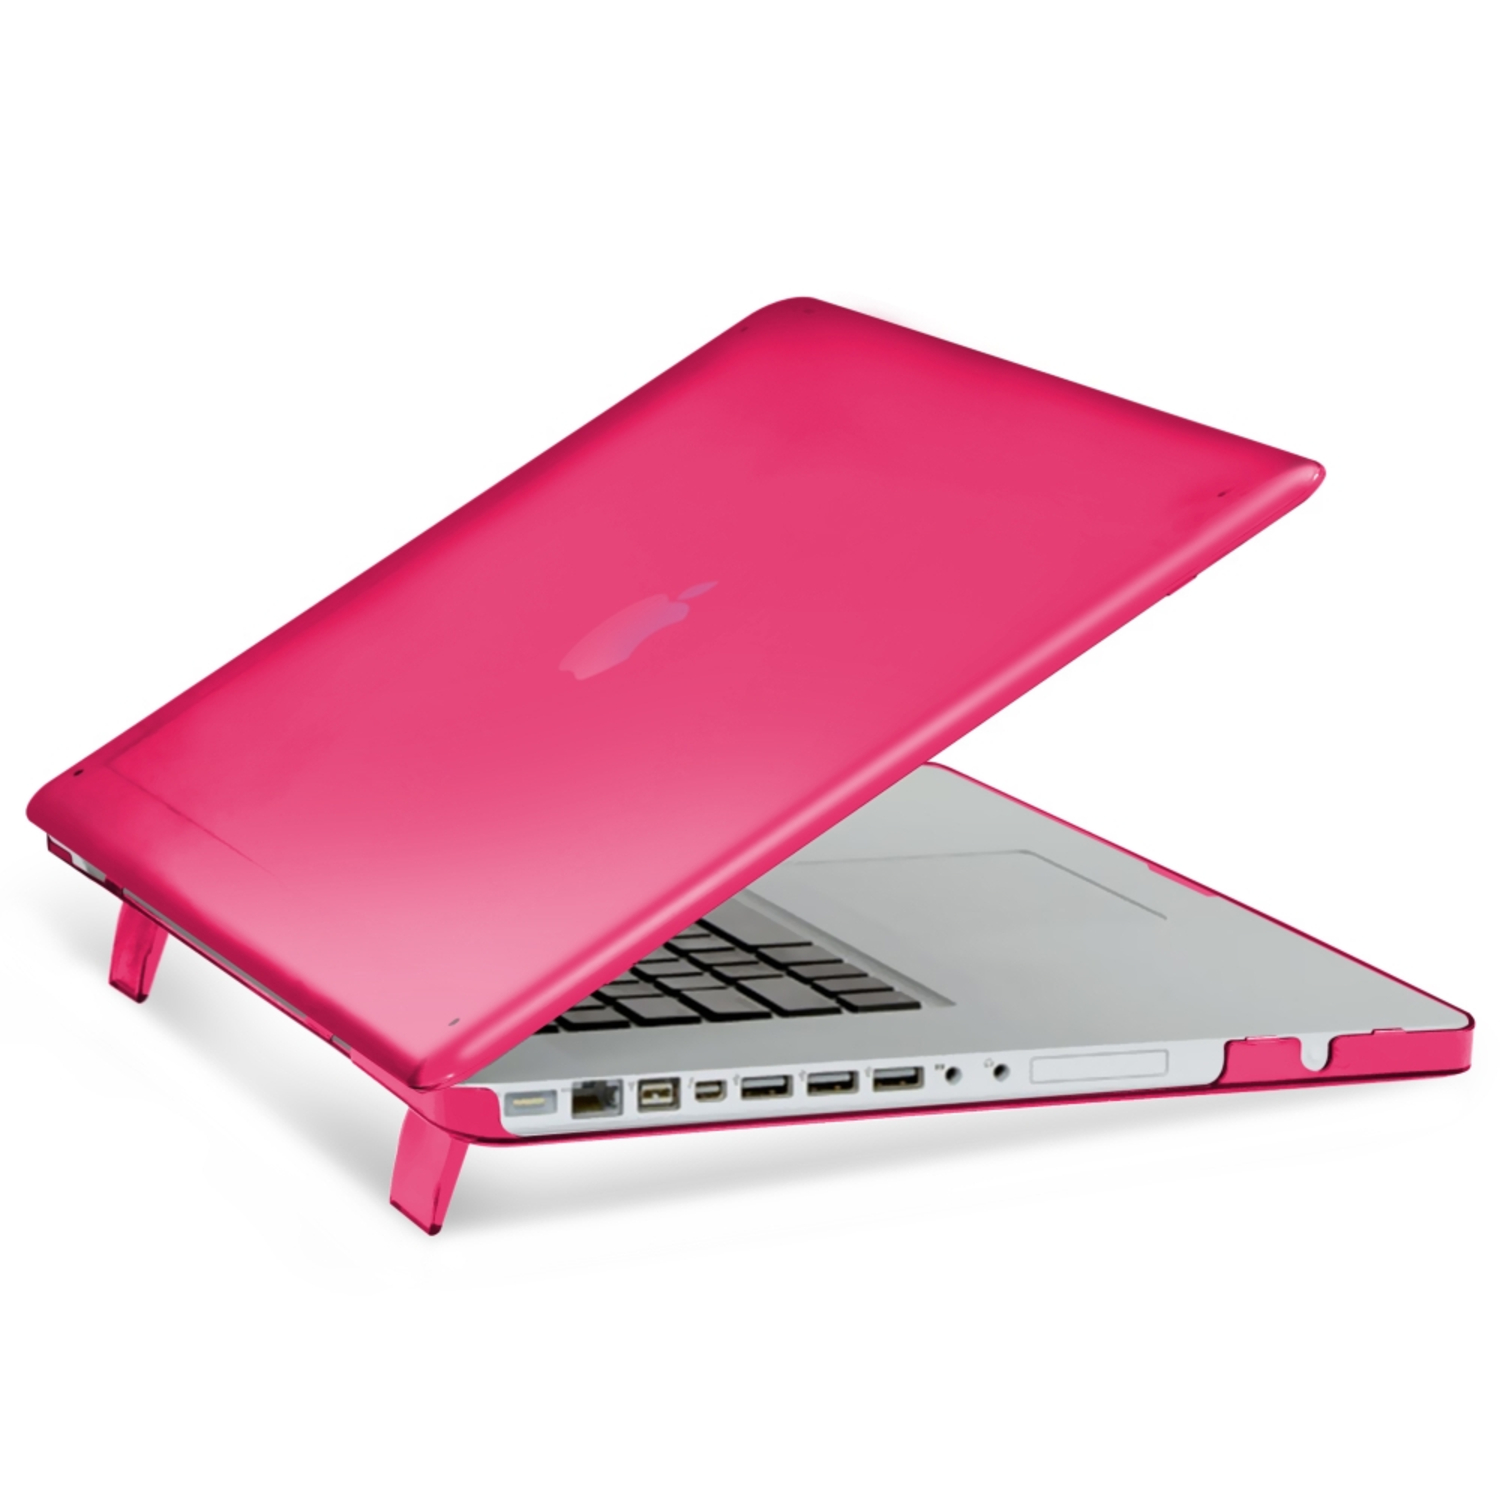 "Insten For Apple MacBook Pro 15.4"" 15"" A1286 Unibody Matte Rubber Coated Hard Case Cover Pink"